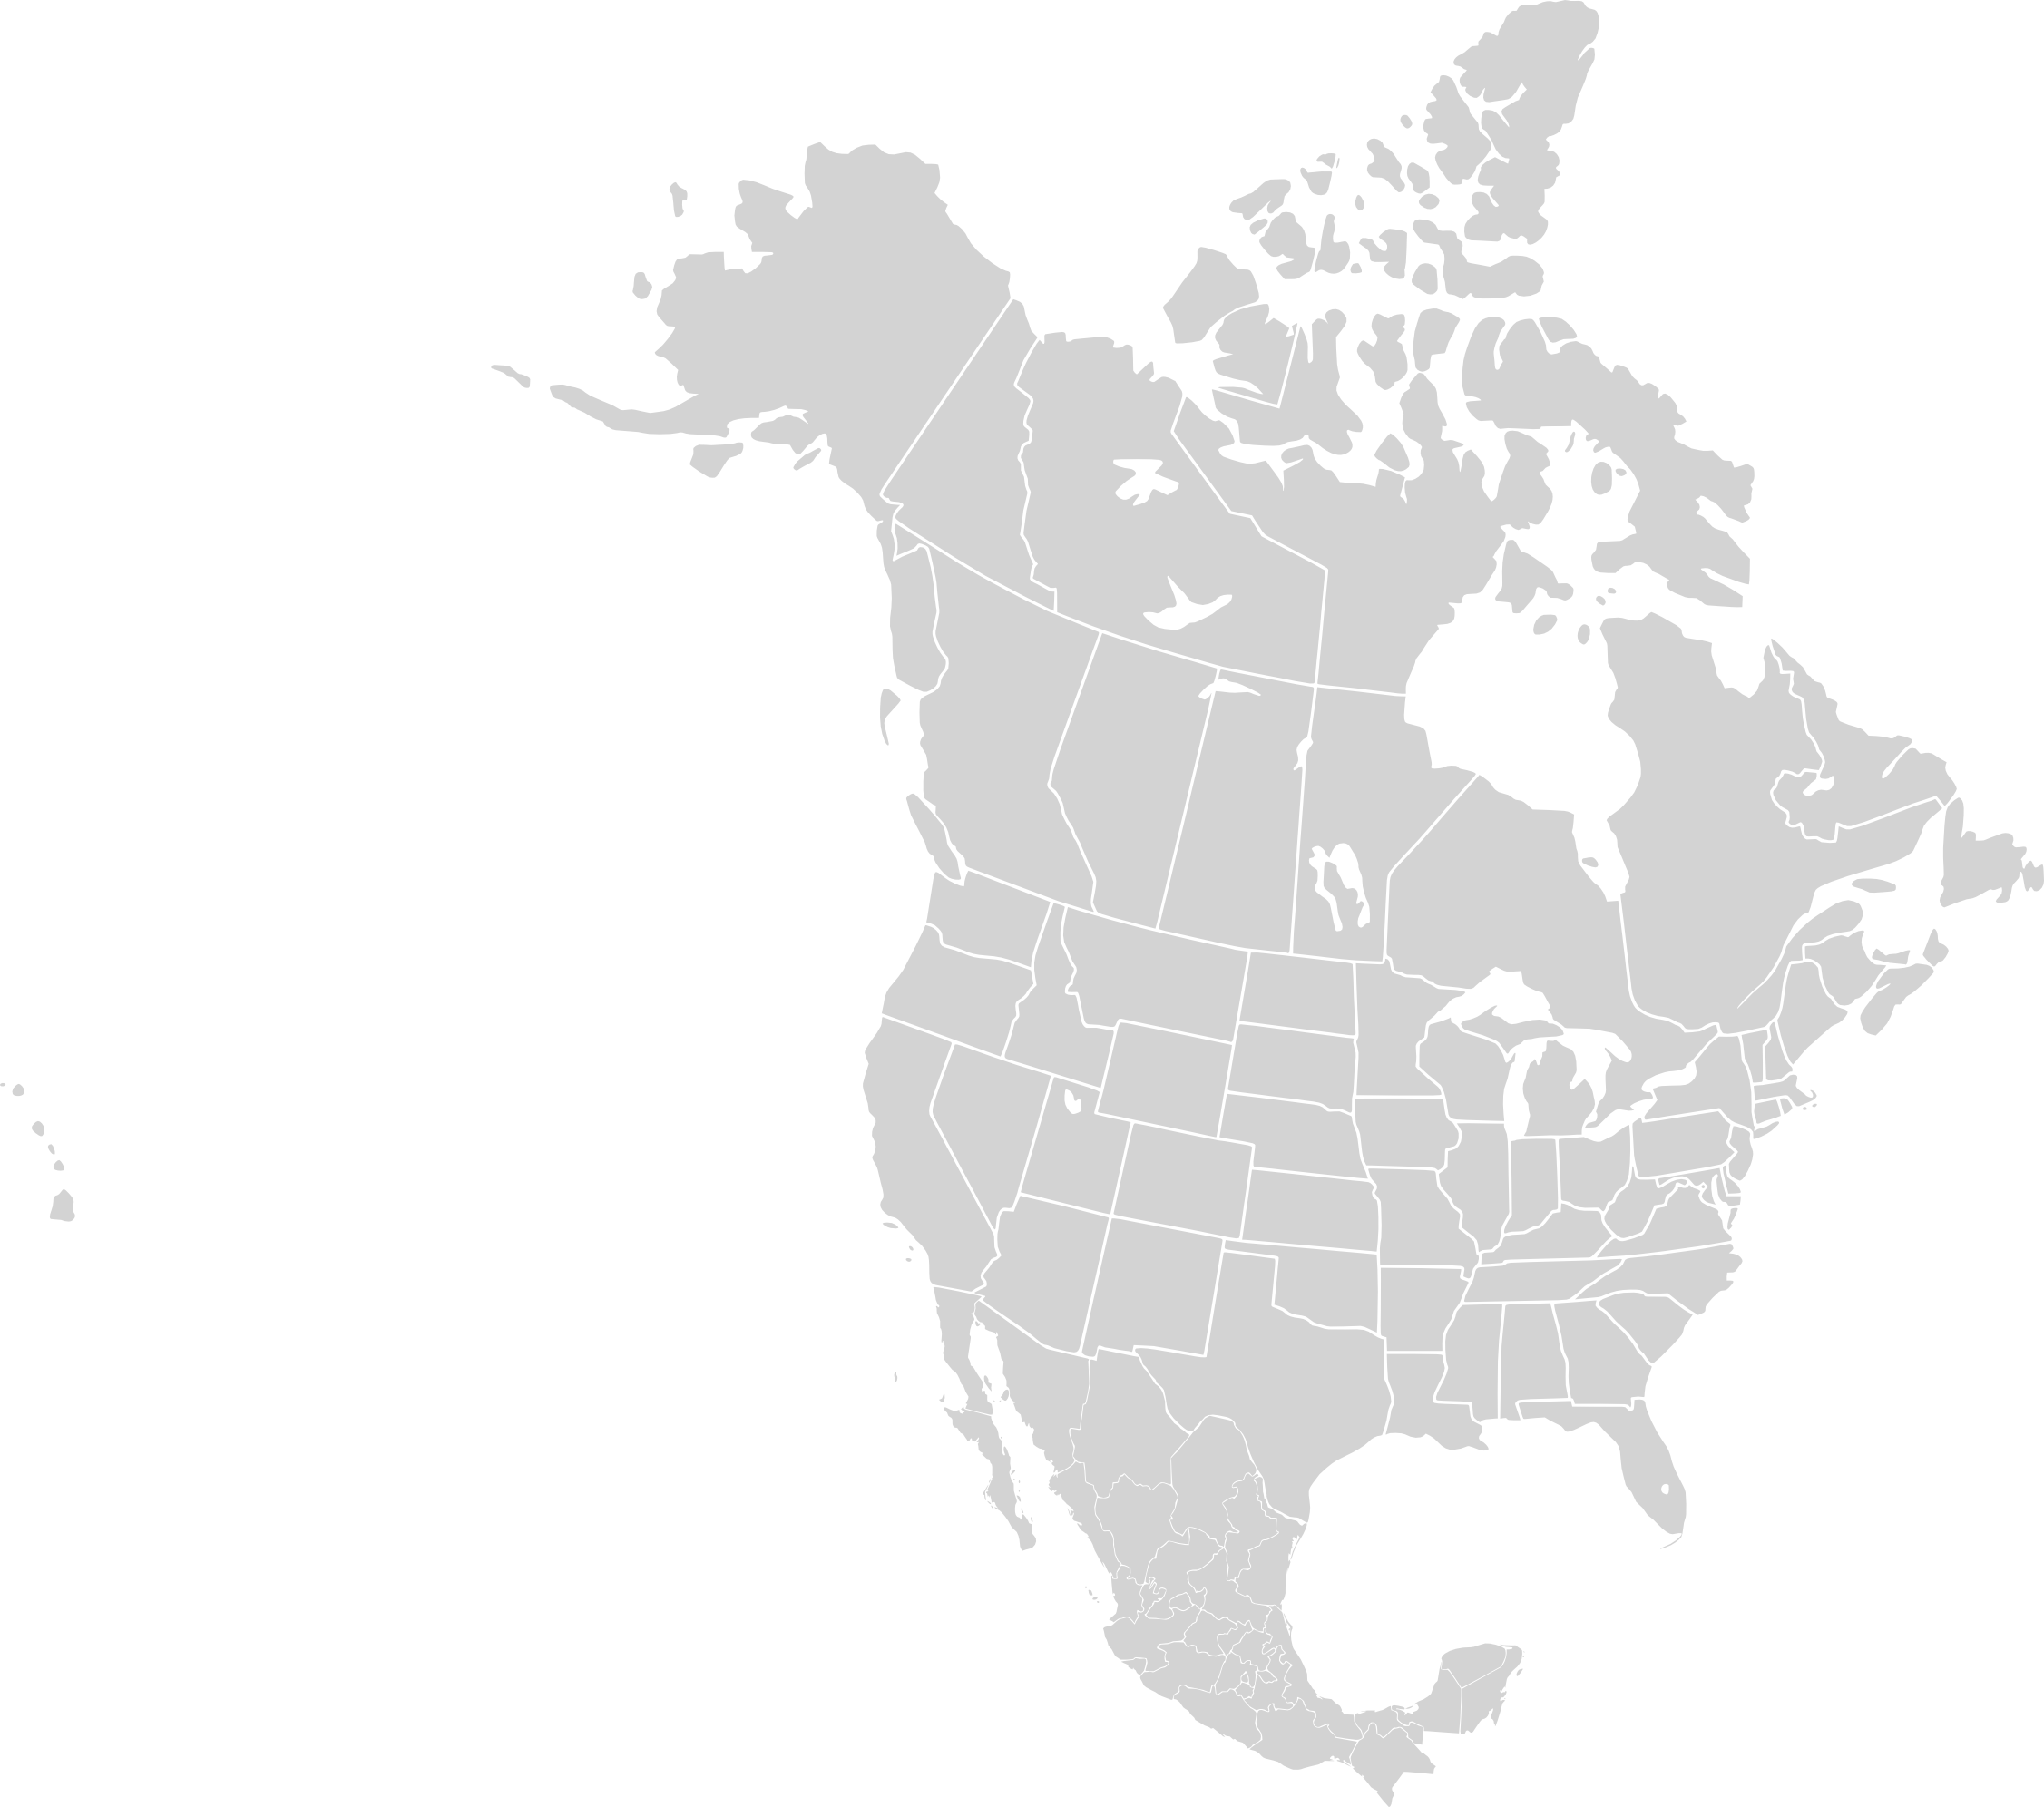 Usa Map Blank Transparent & PNG Clipart Free Download - YA-webdesign